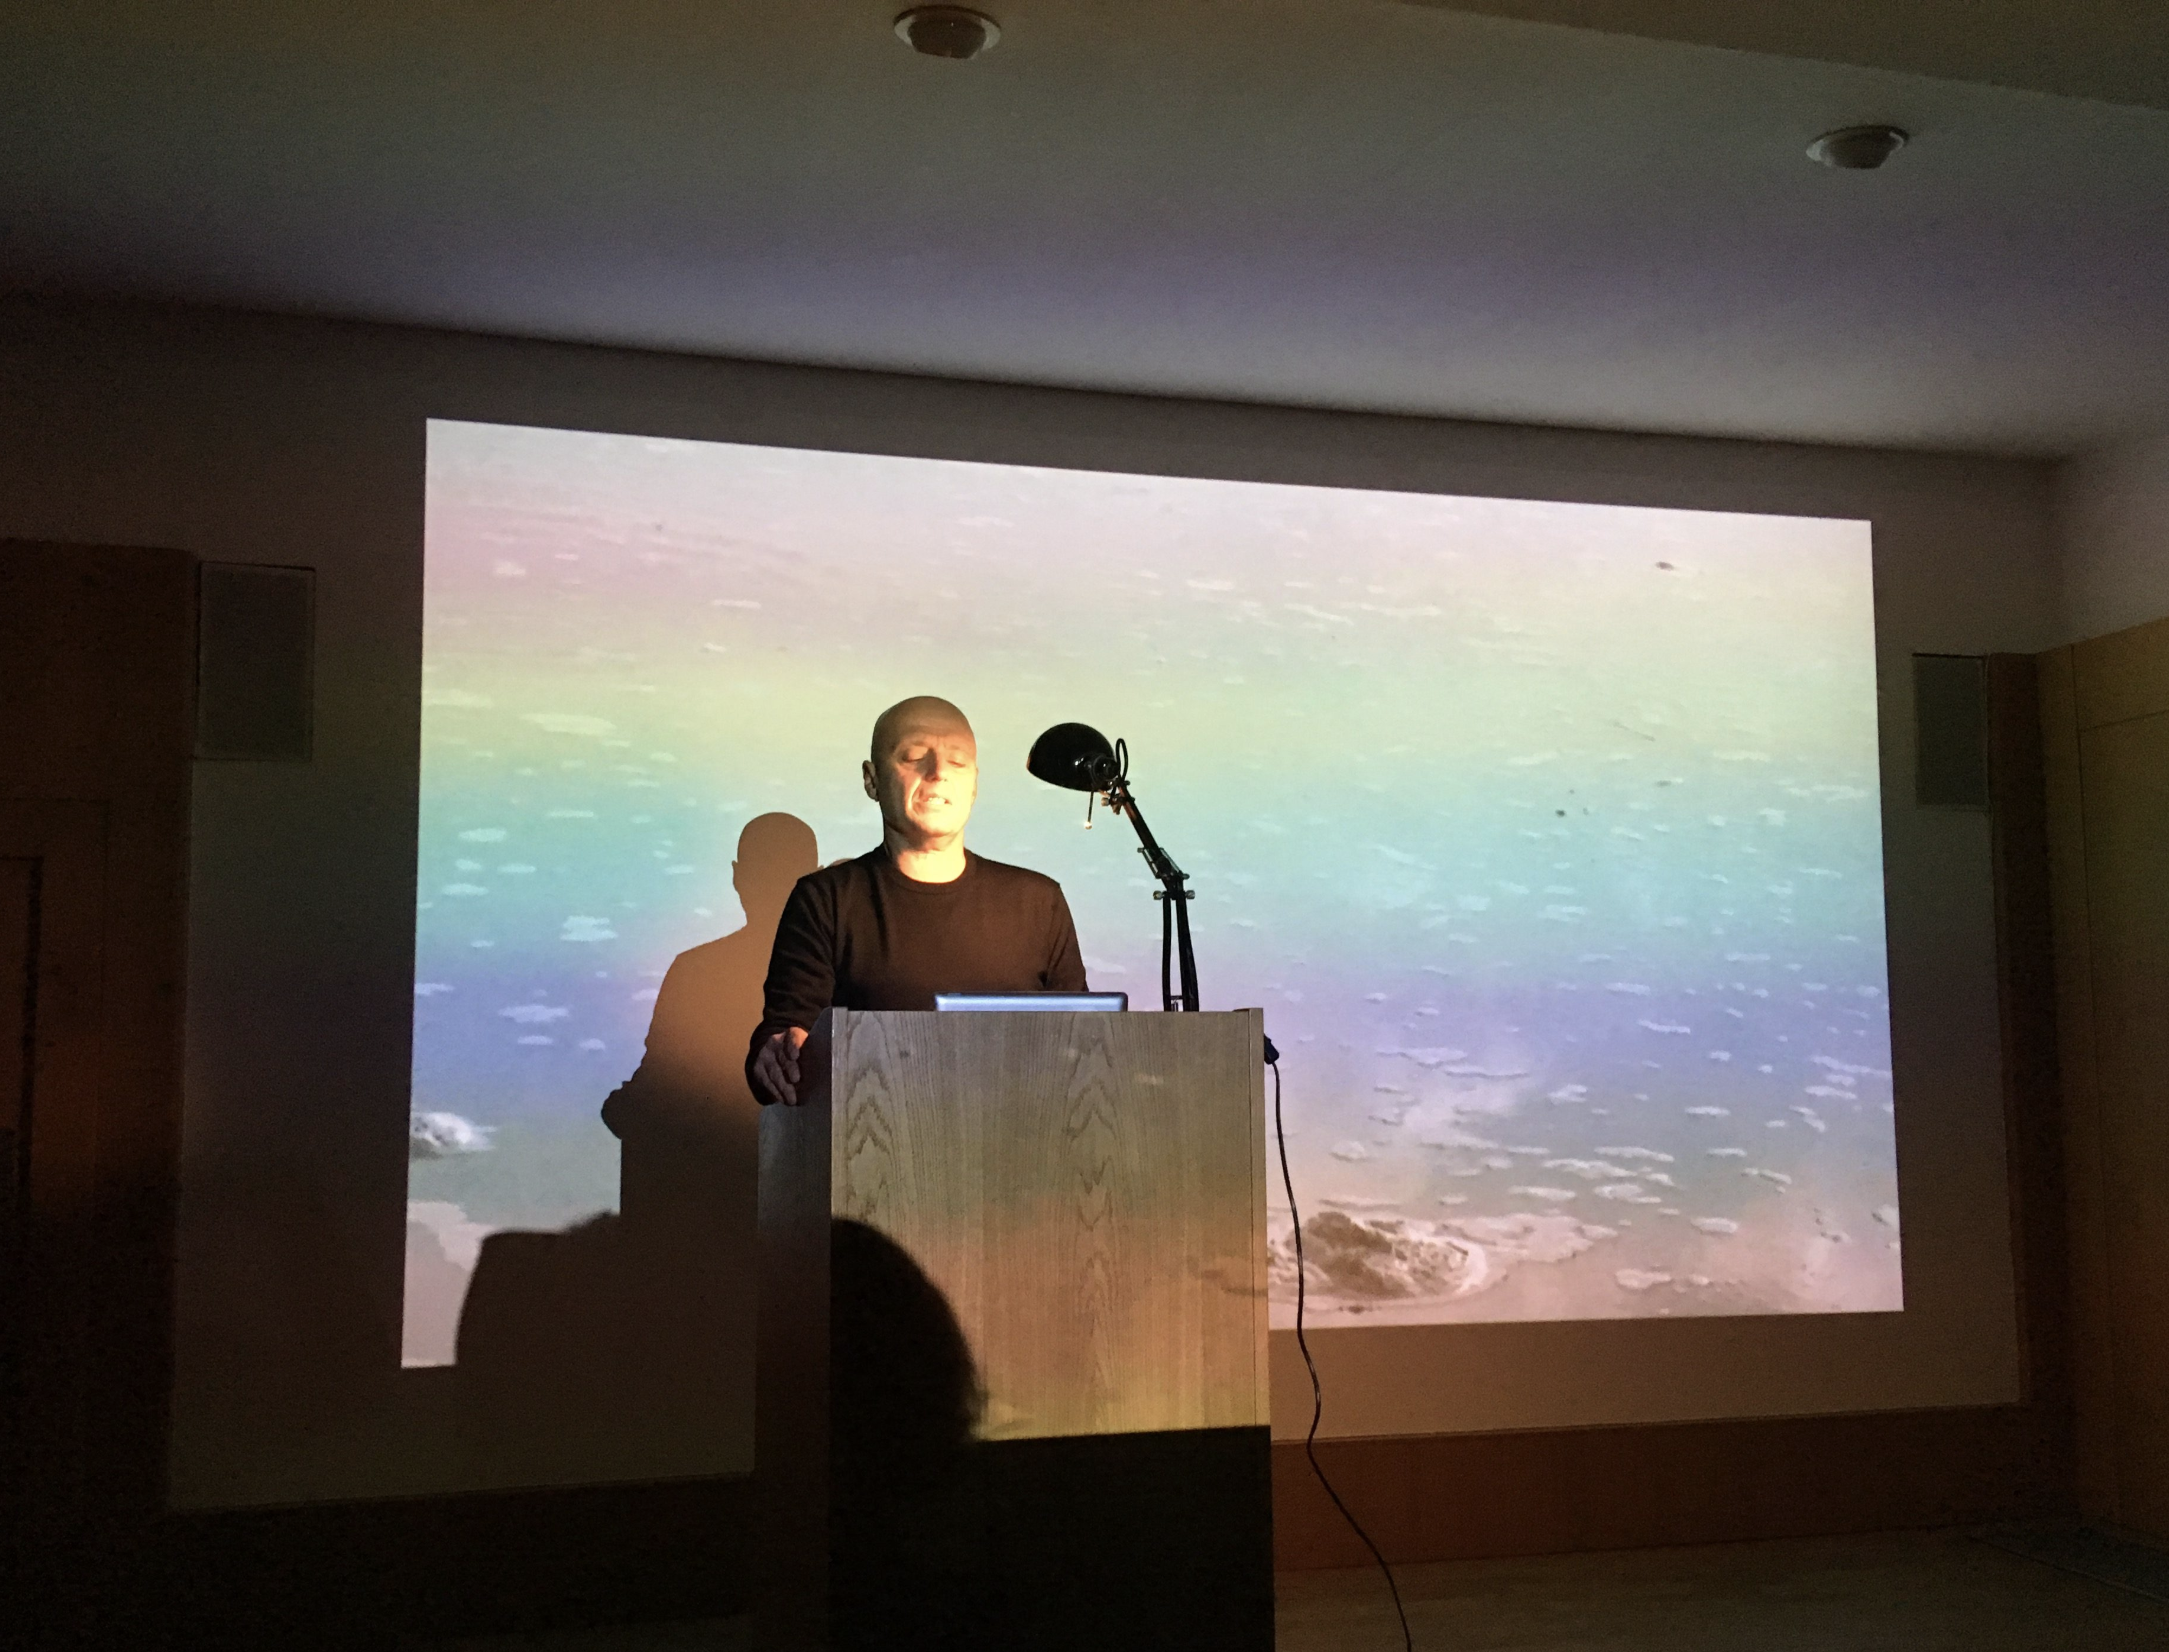 Tzvet Lazar performing the reading of 'The Whole Infernal Sequence' by Reed O'Beirne as part of the Disasters of Peace curated programme at the Whitechapel Gallery, November 2018.